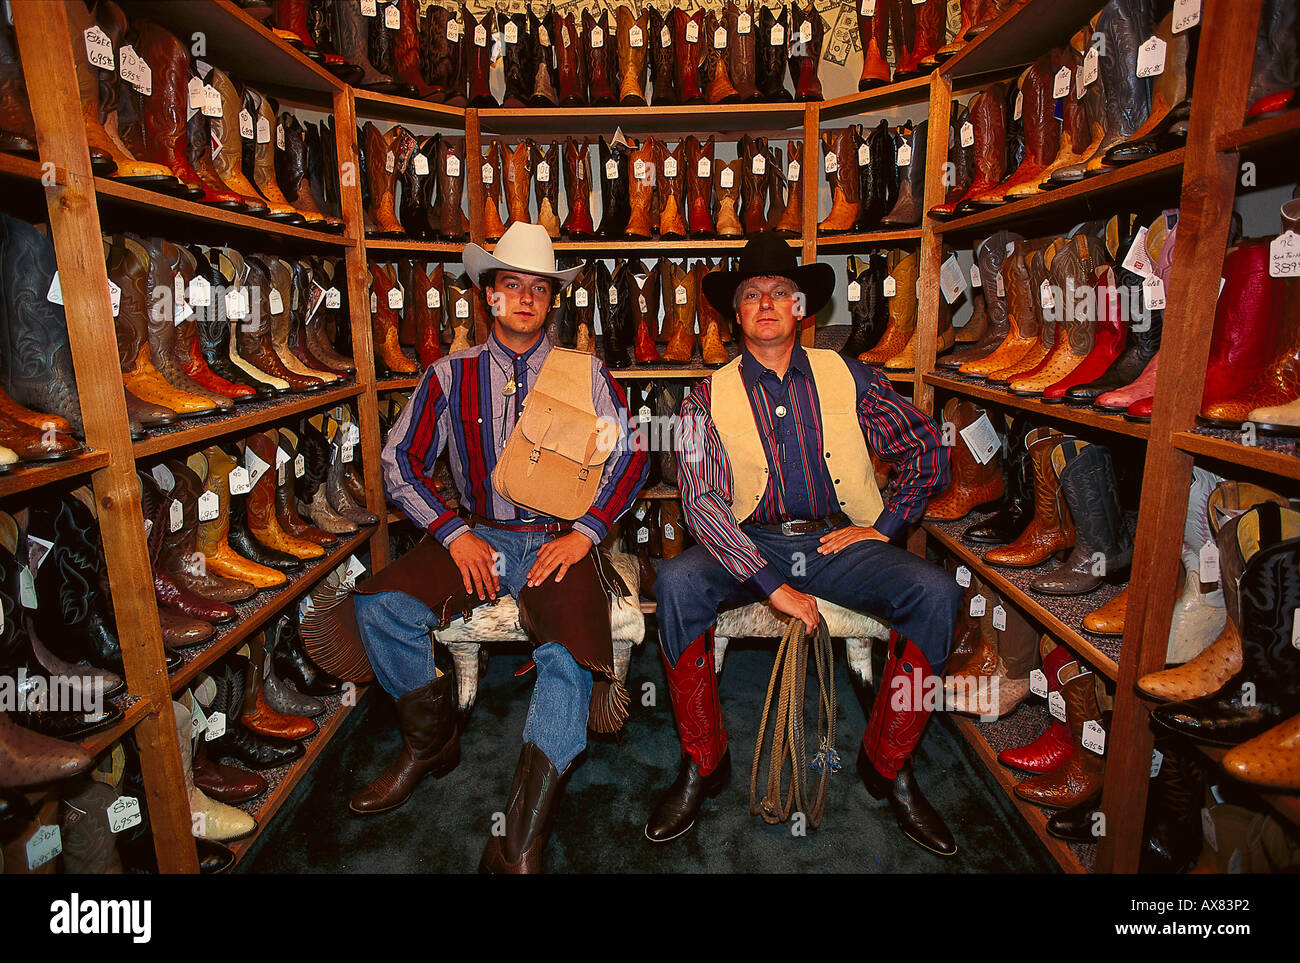 Two men wearing cowboy hats in a shop with cowboy boots, Fort ...